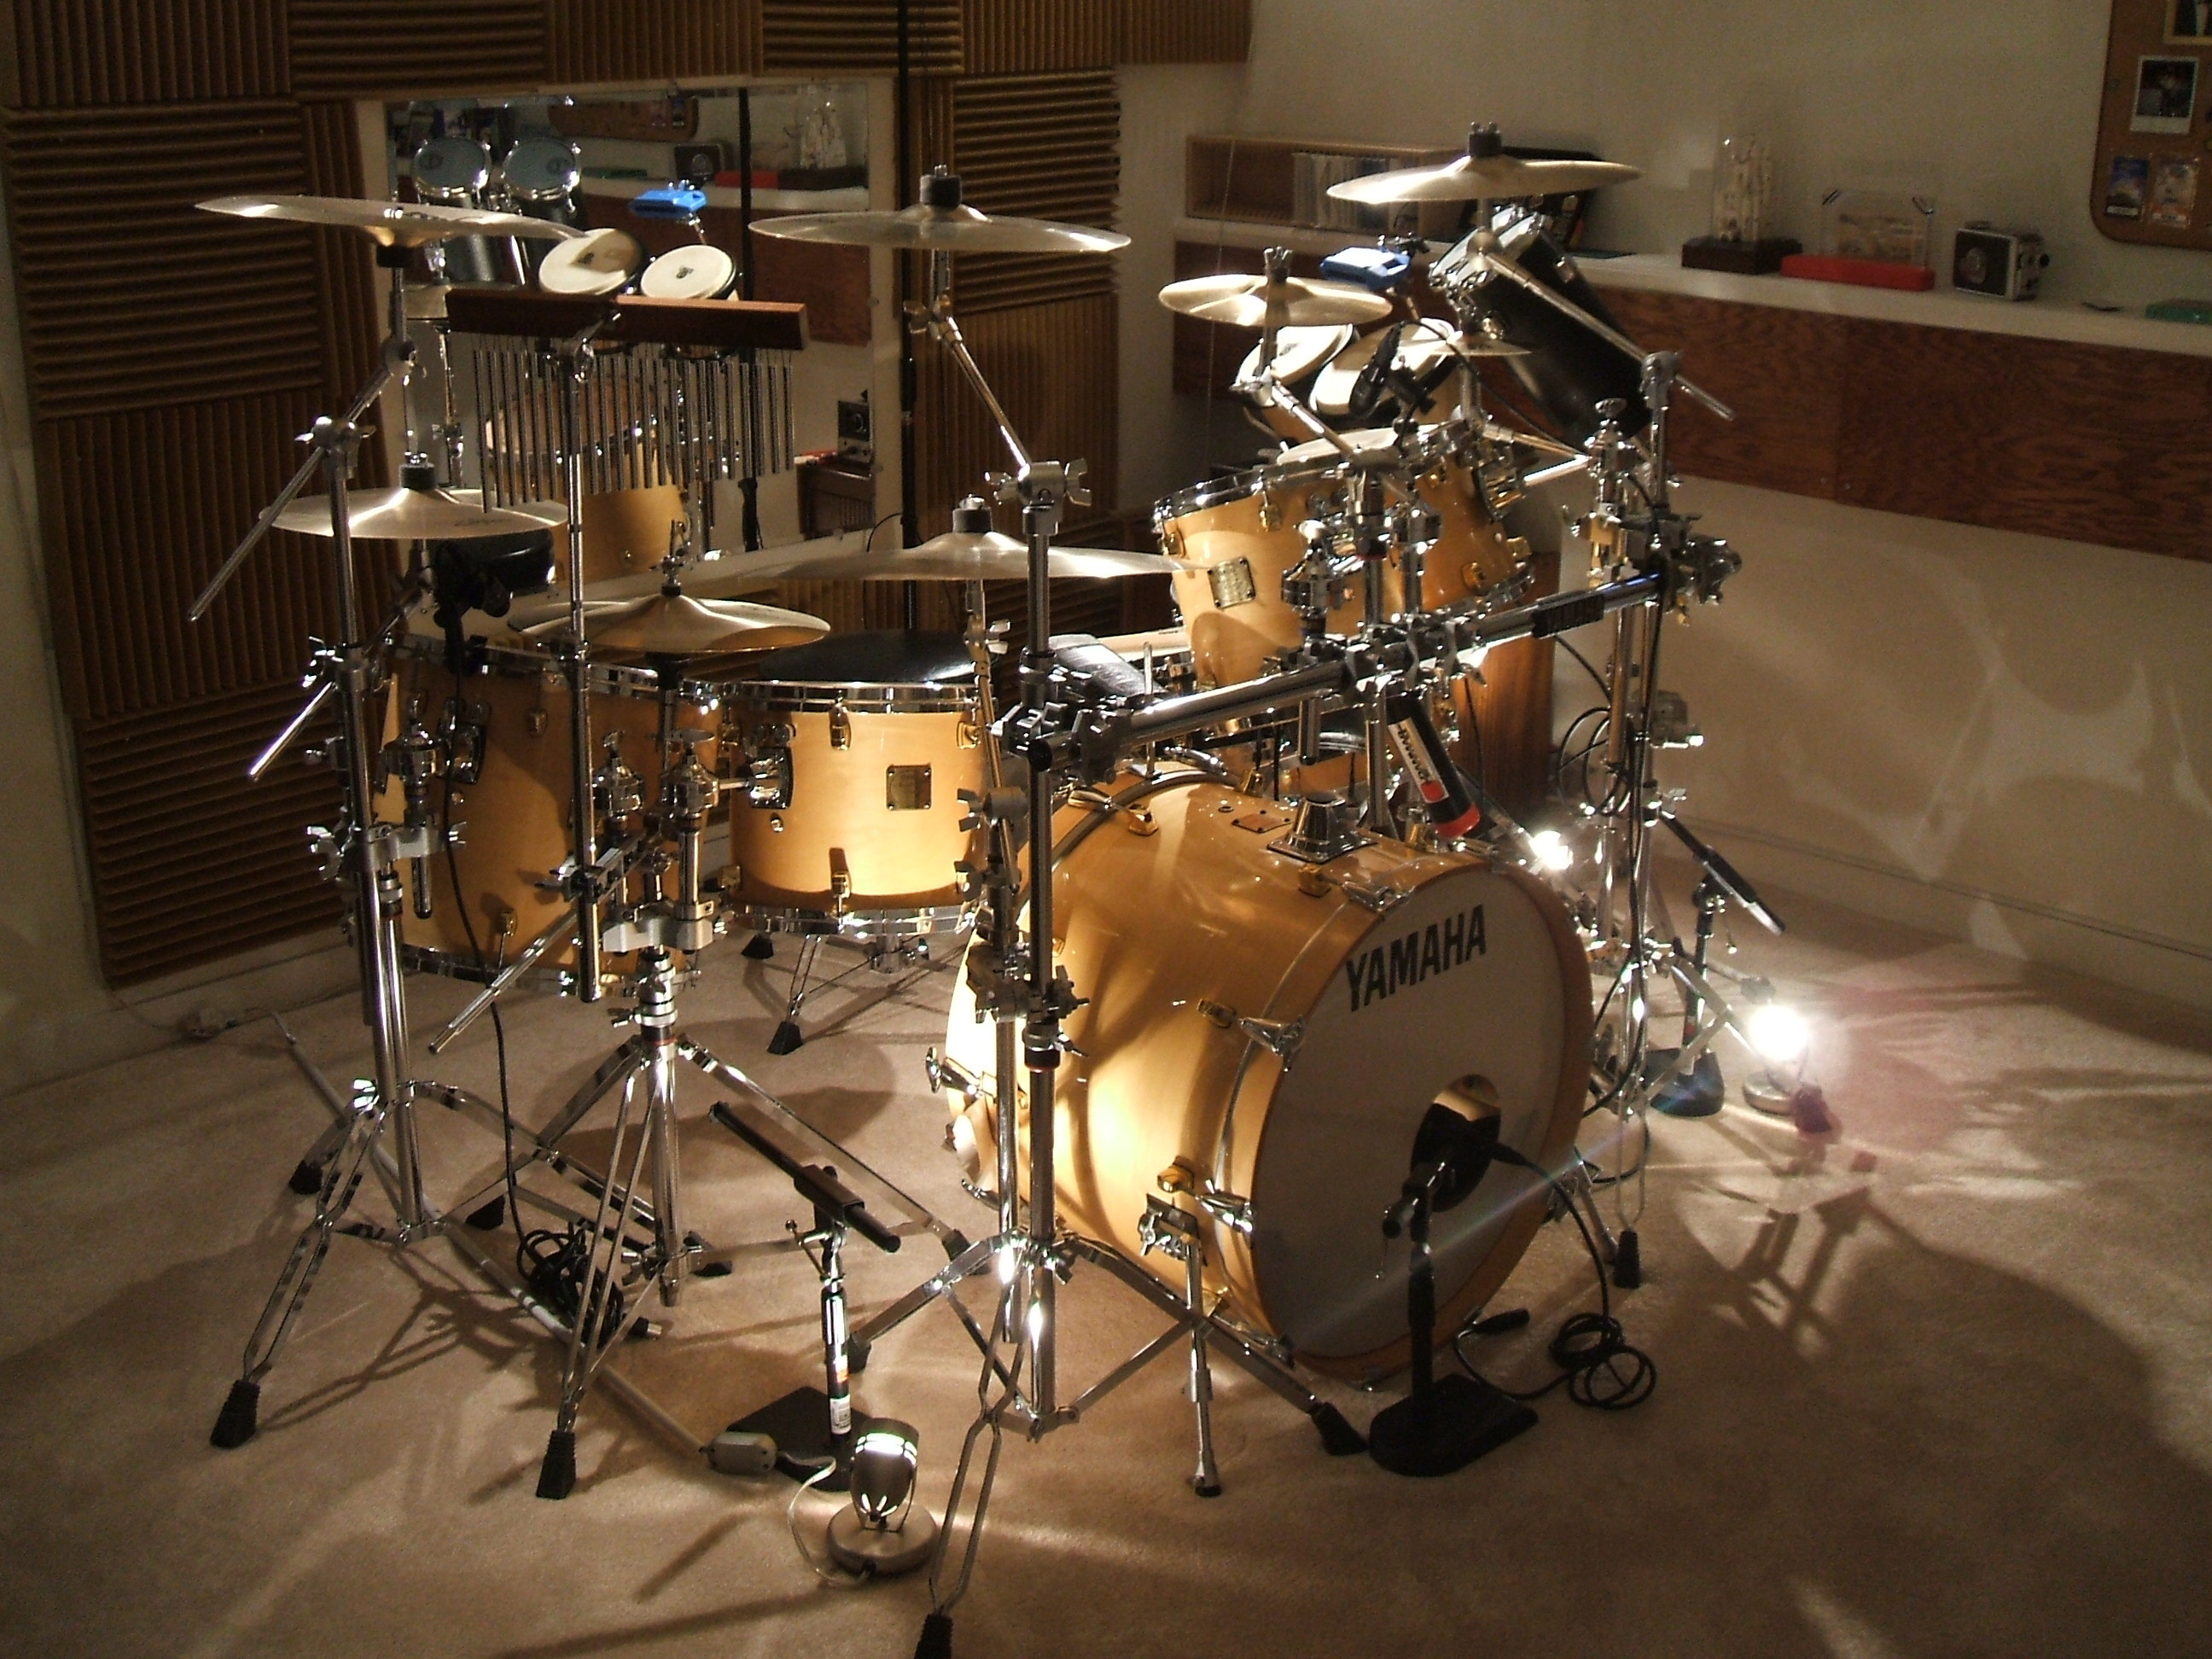 Res: 2592x1944, Adorable Yamaha Drums Background, 229193078